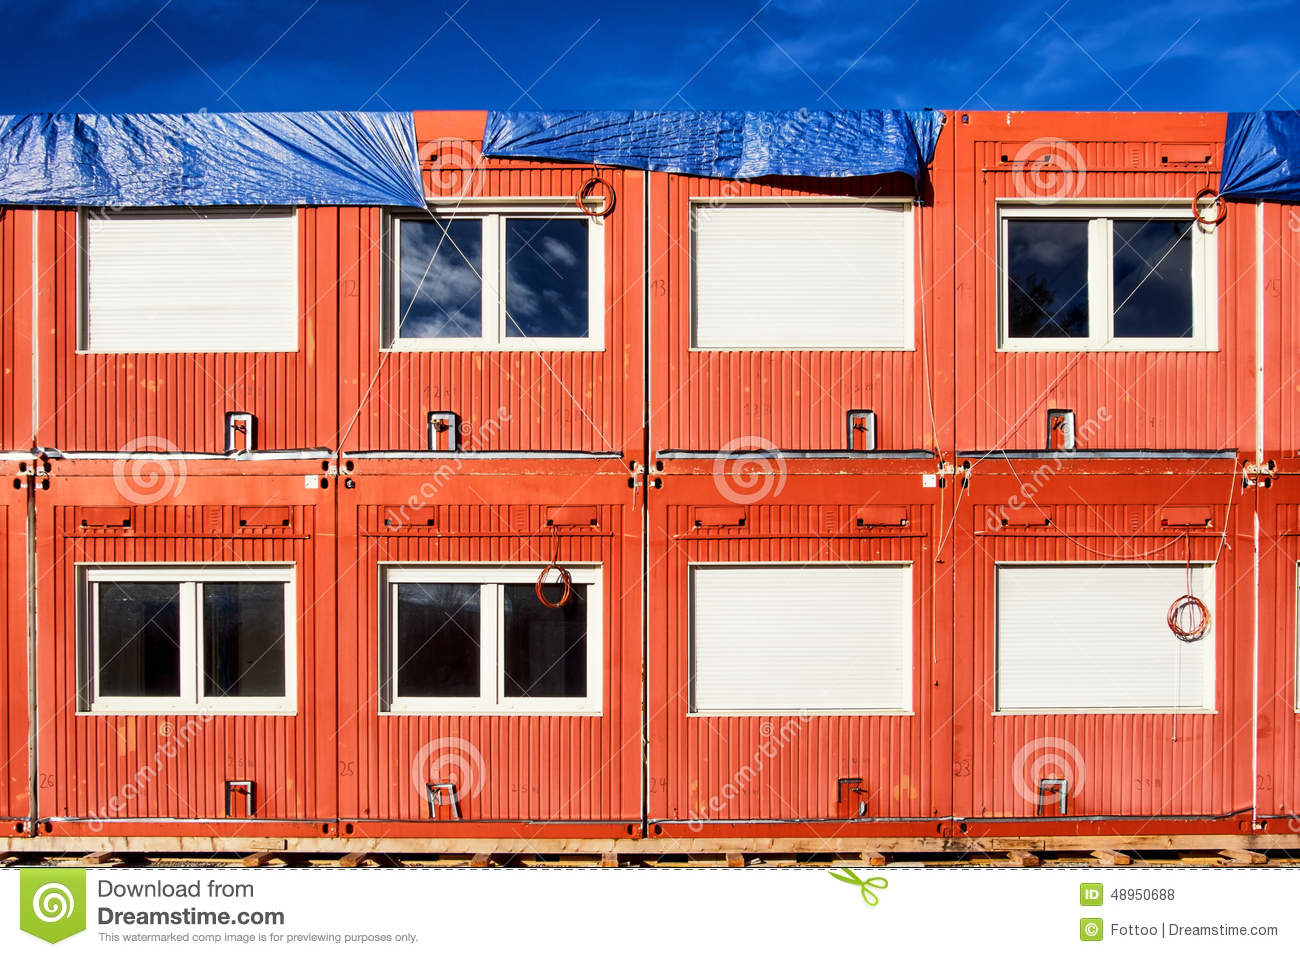 Mobile home container stock photo image 48950688 - Container mobile home ...